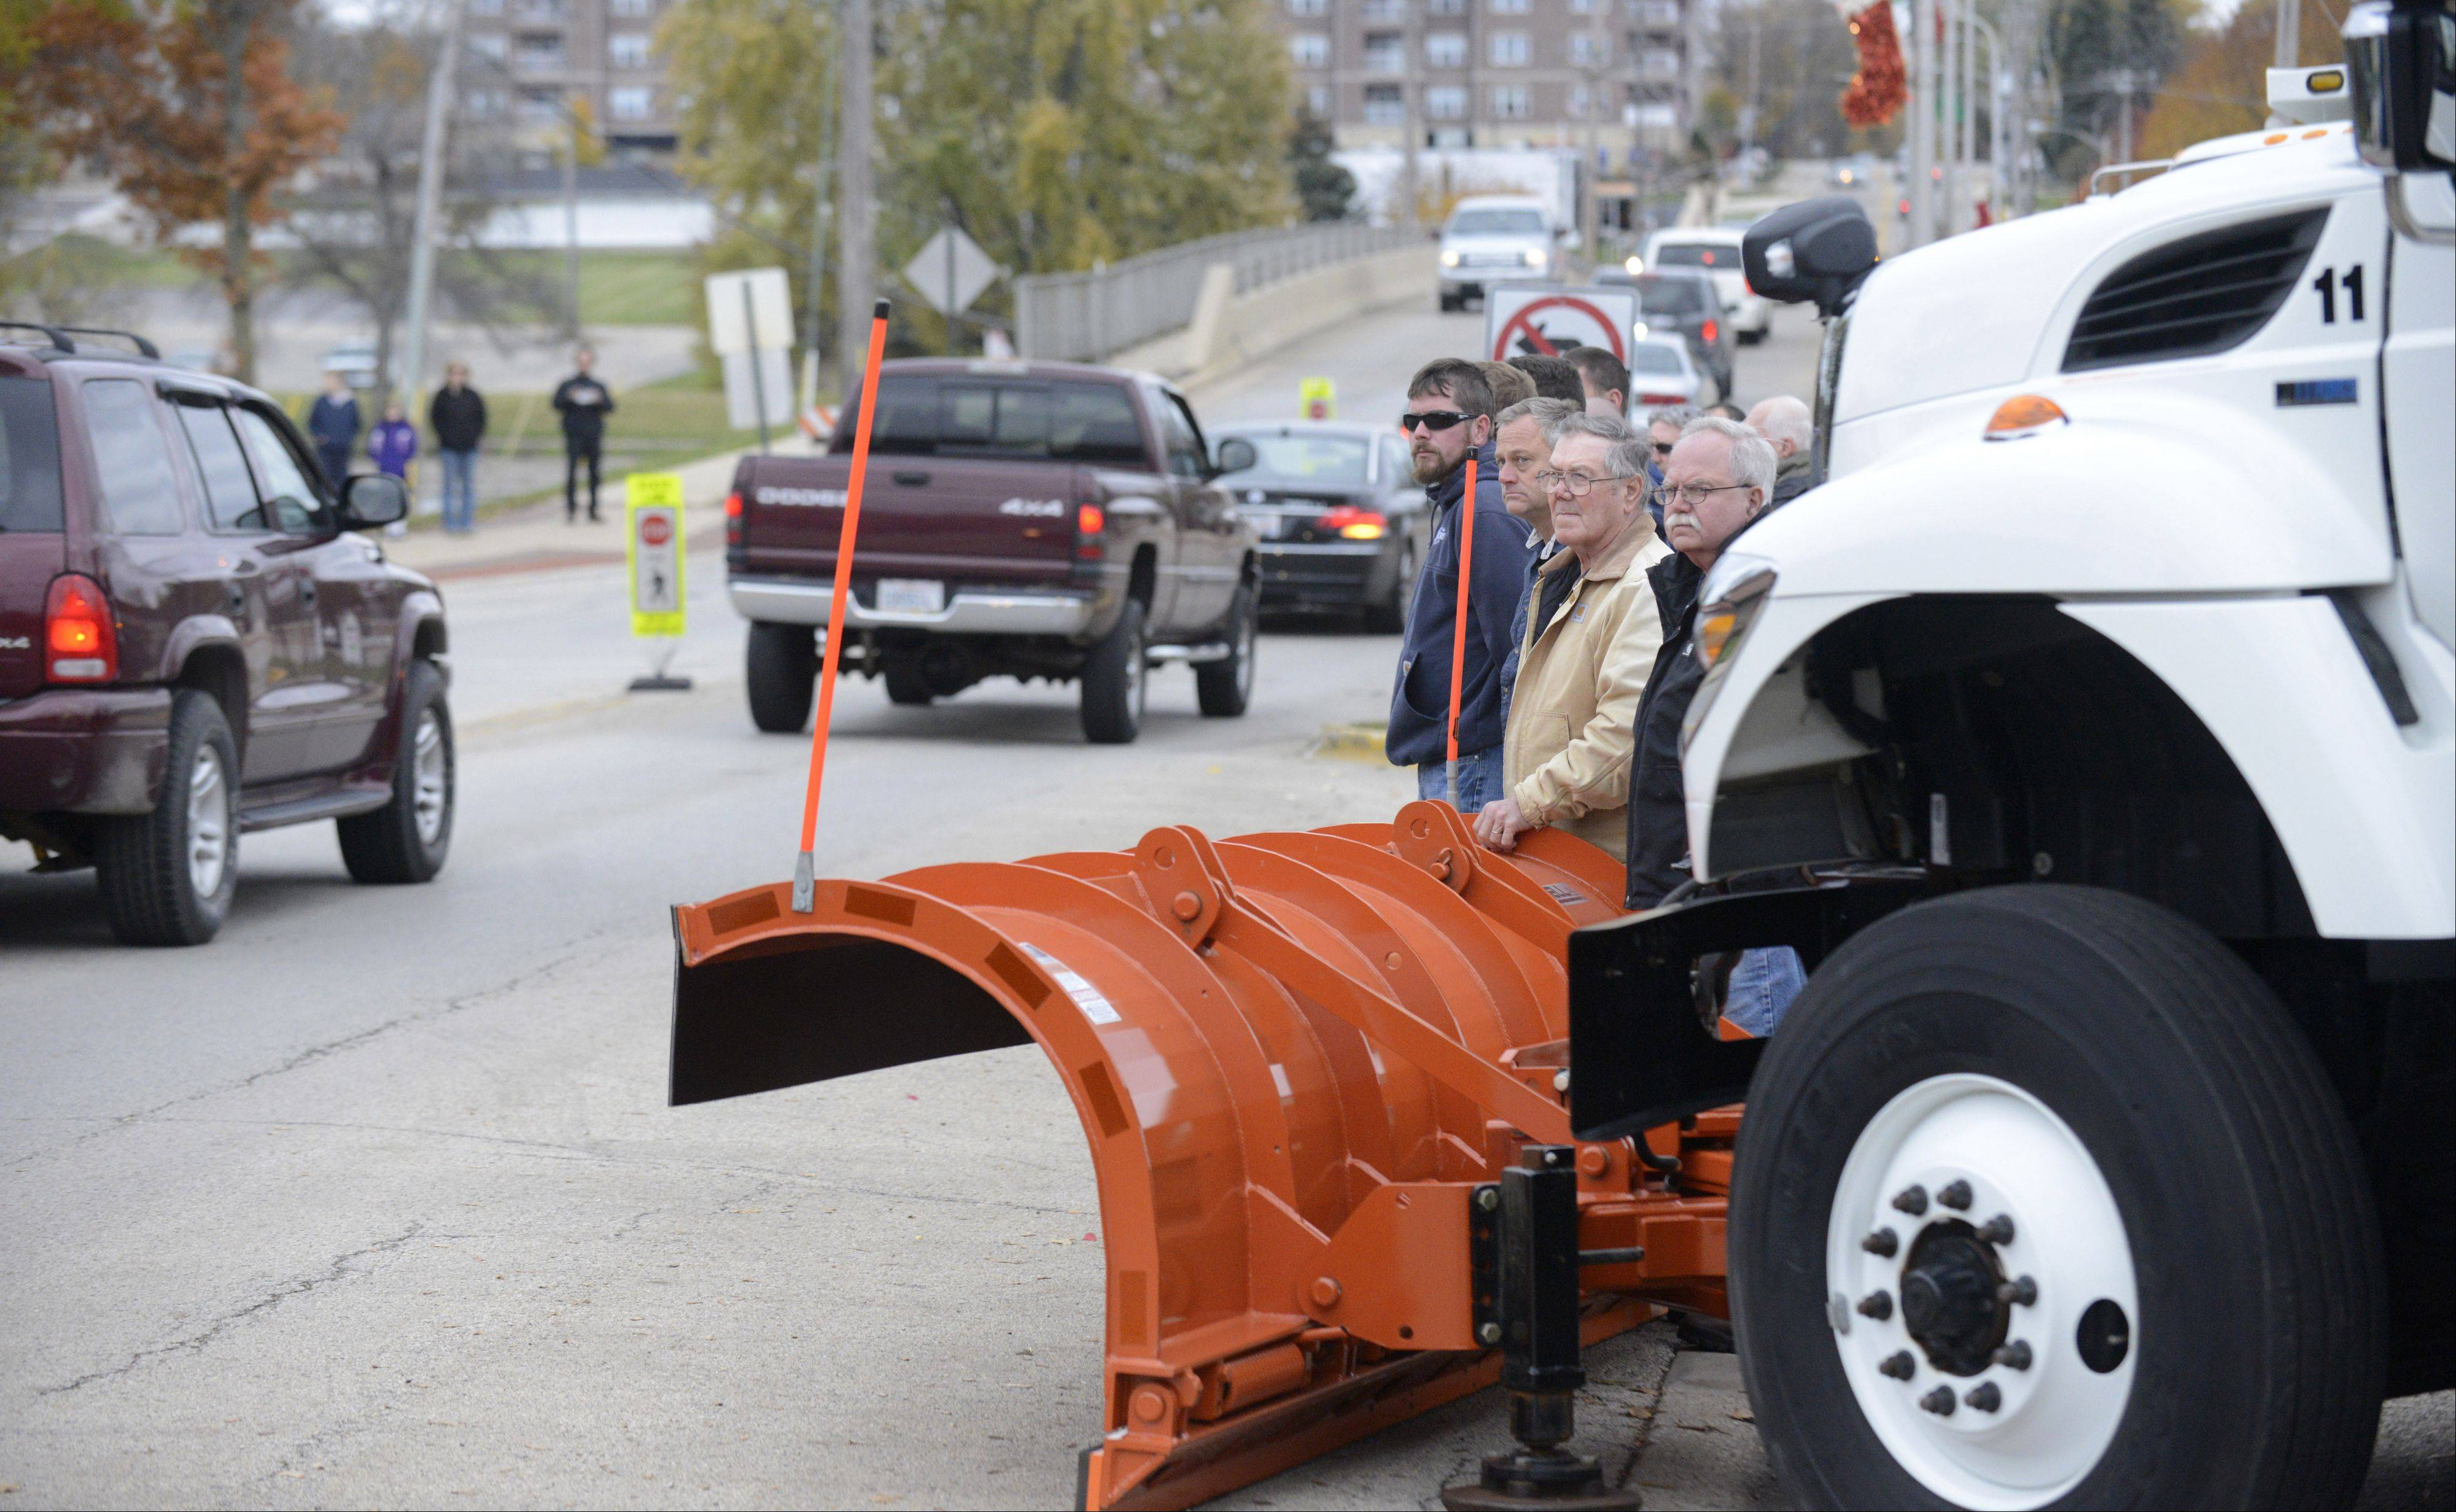 Members of the South Elgin Public Works Department and others gathered on State Street Thursday to watch the funeral procession for Village President Jim Hansen.